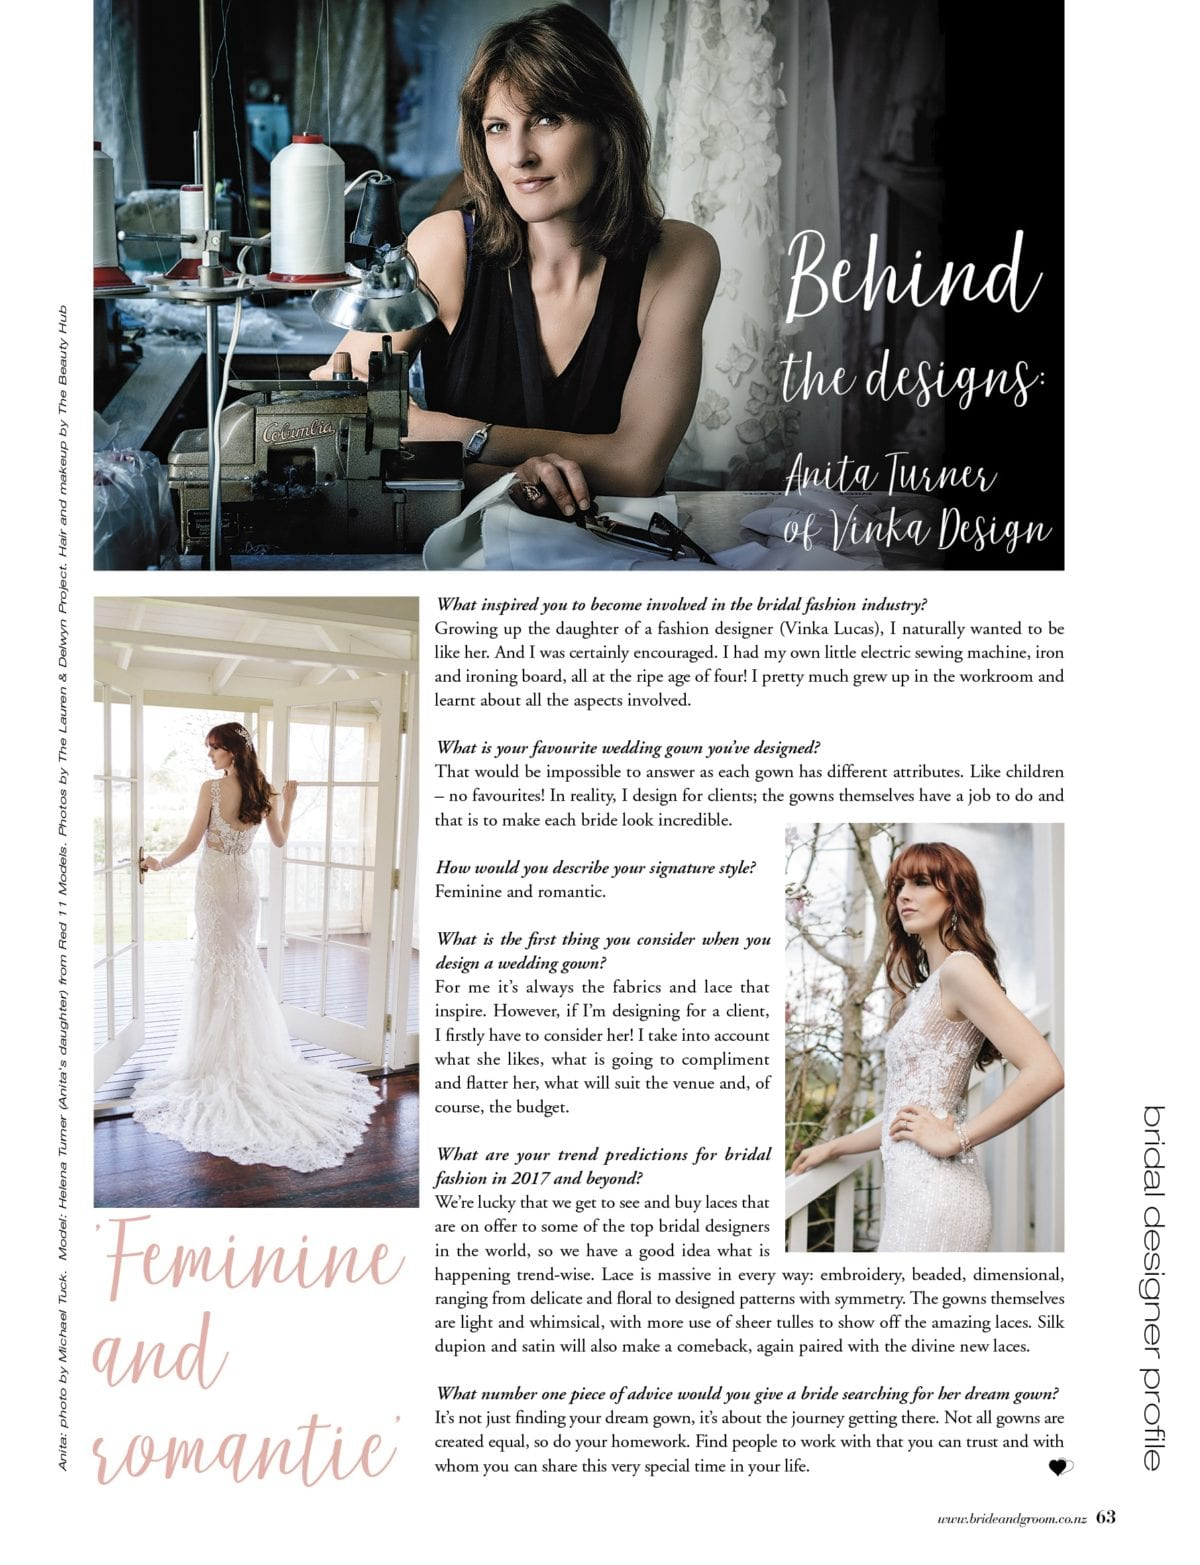 Behind the Designs feature in Bride and Groom magazine on Anita Turner of Vinka Design